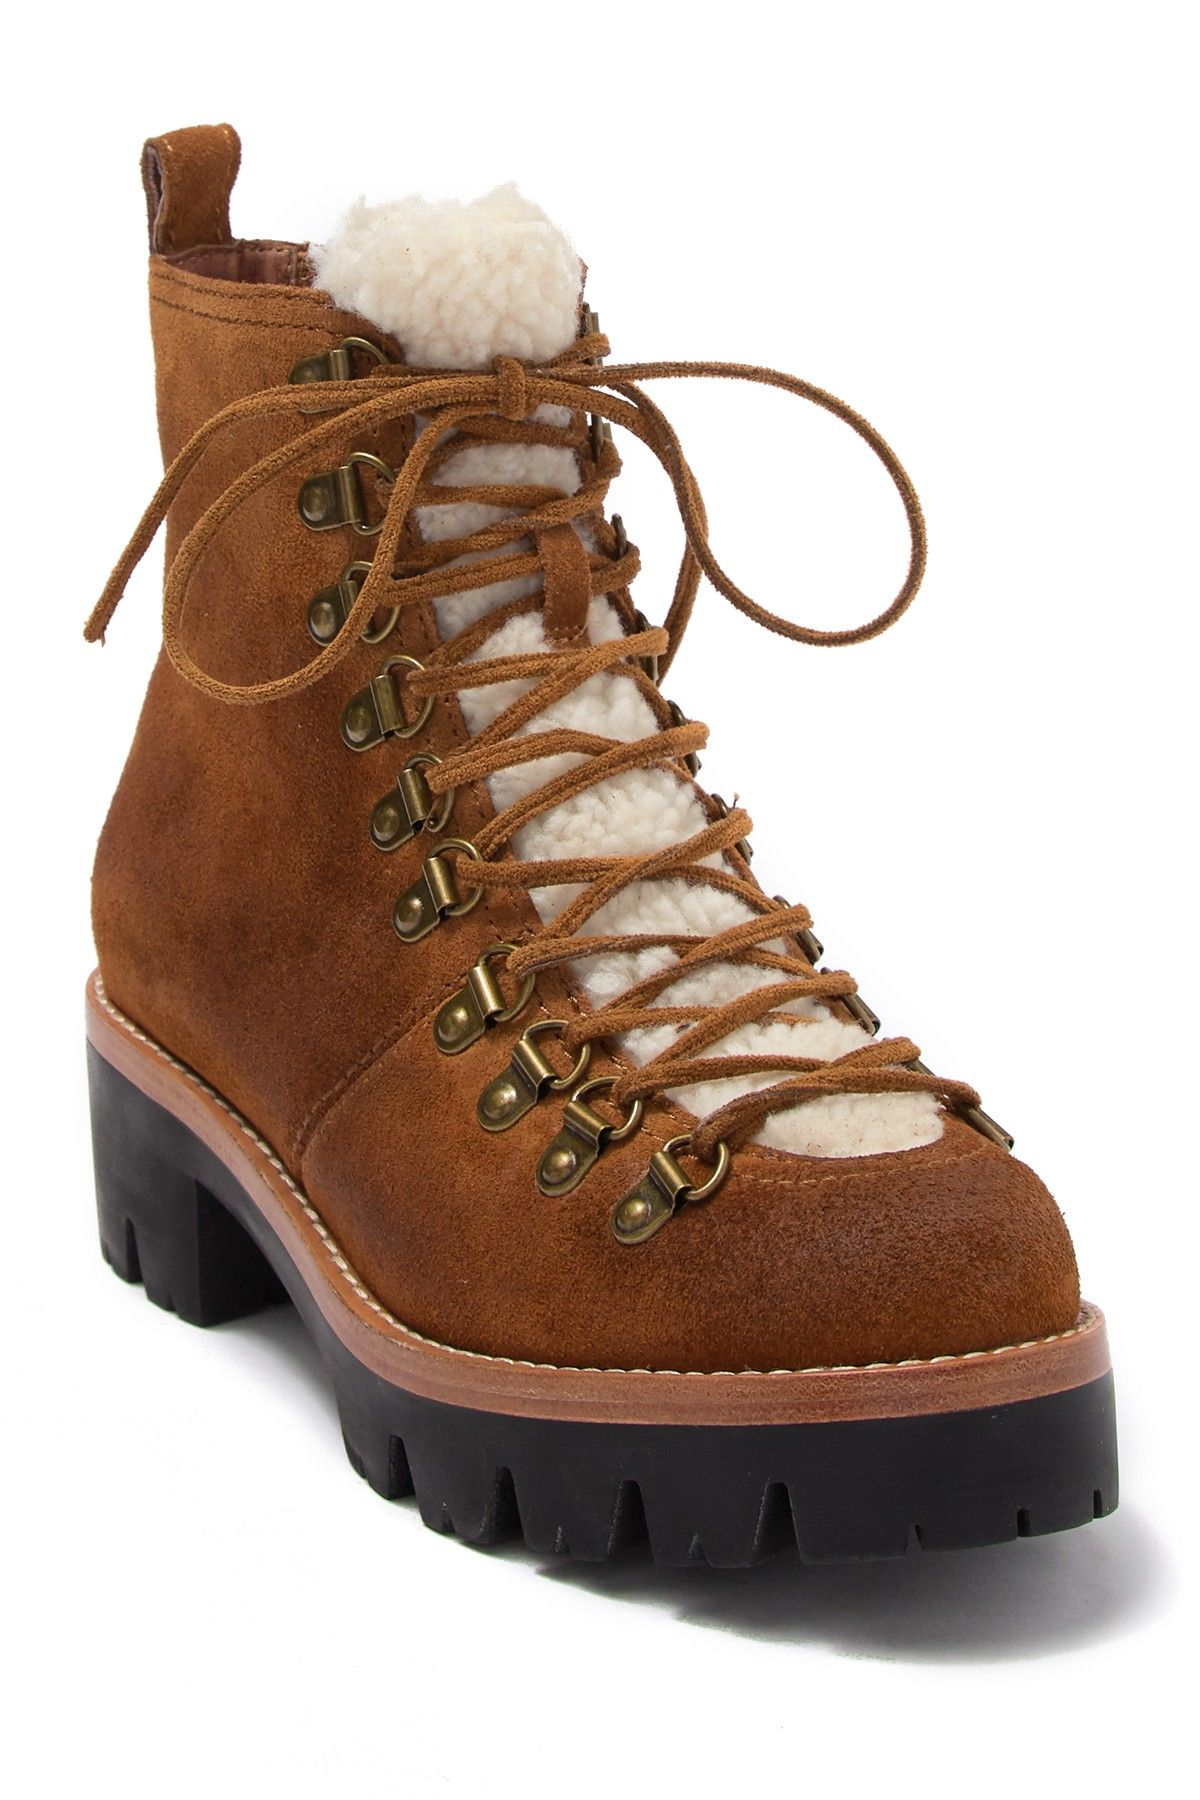 Jeffrey Campbell Stanley Faux Fur Detail Lace Up Hiker Nordstrom Rack In 2021 Snow Boots Women Hiking Boots Outfit Brown Hiking Boots